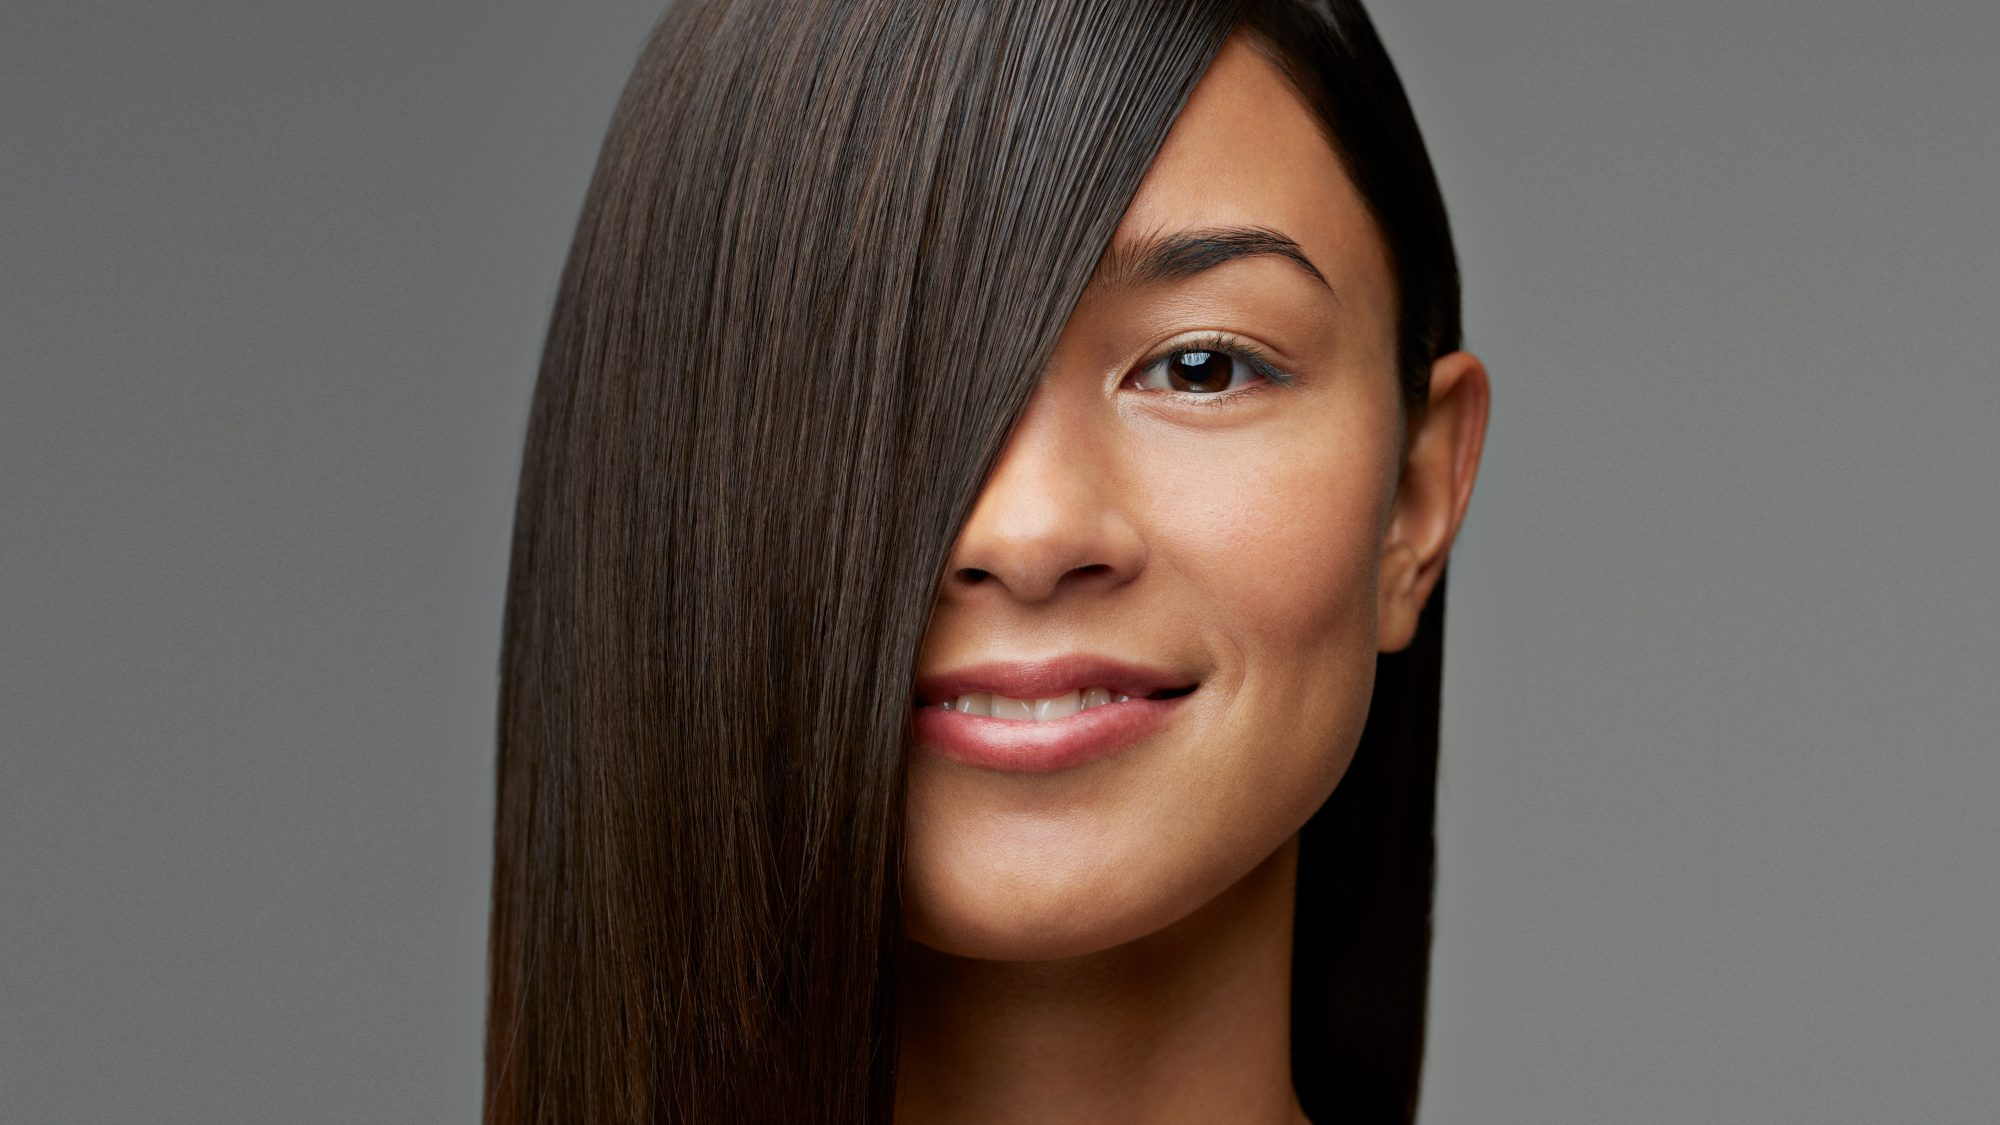 woman with sleek, straight hair